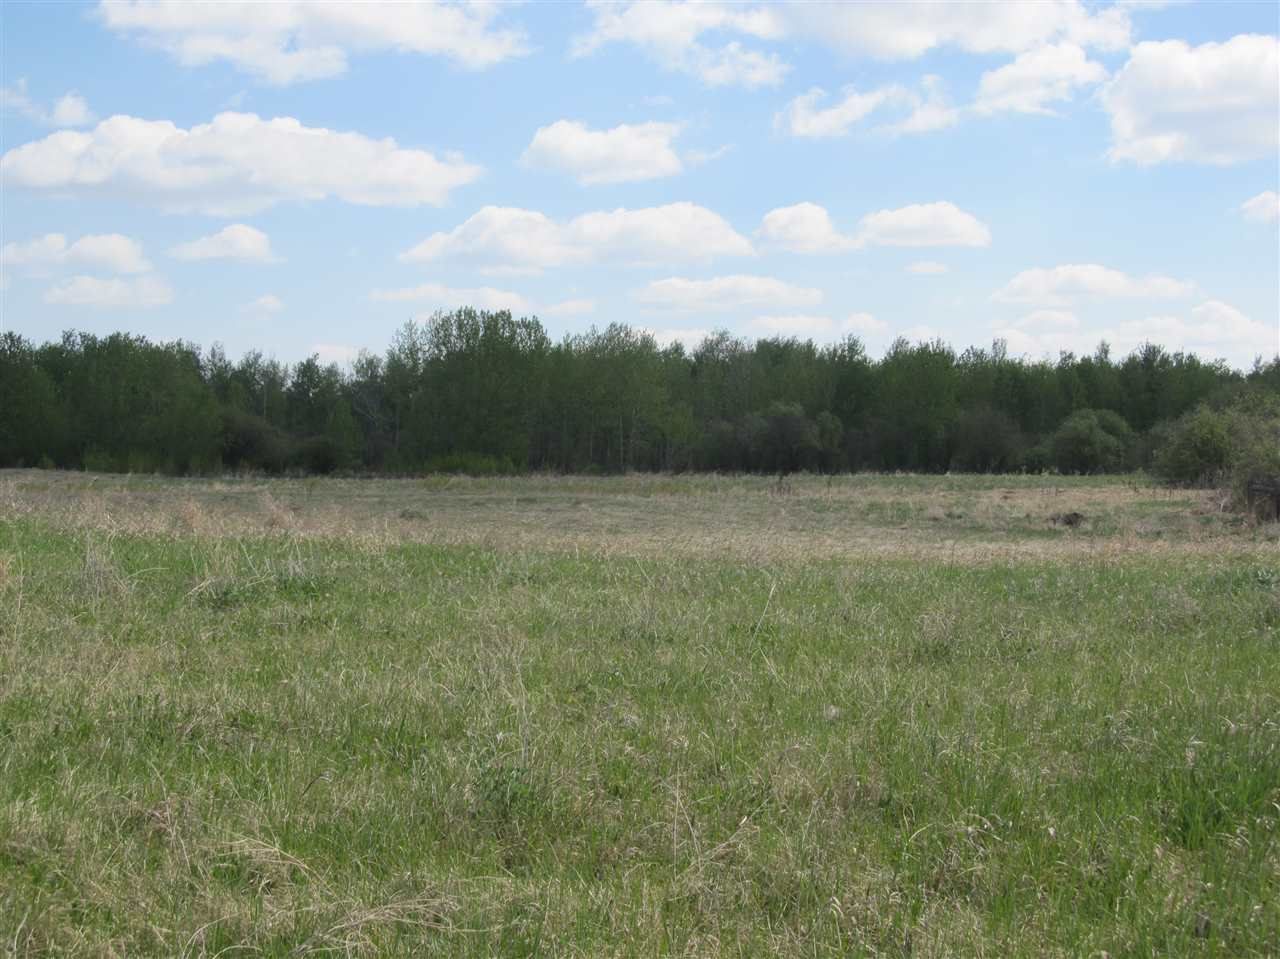 Photo 5: RR 204 HWY 661: Rural Thorhild County Rural Land/Vacant Lot for sale : MLS(r) # E4065910